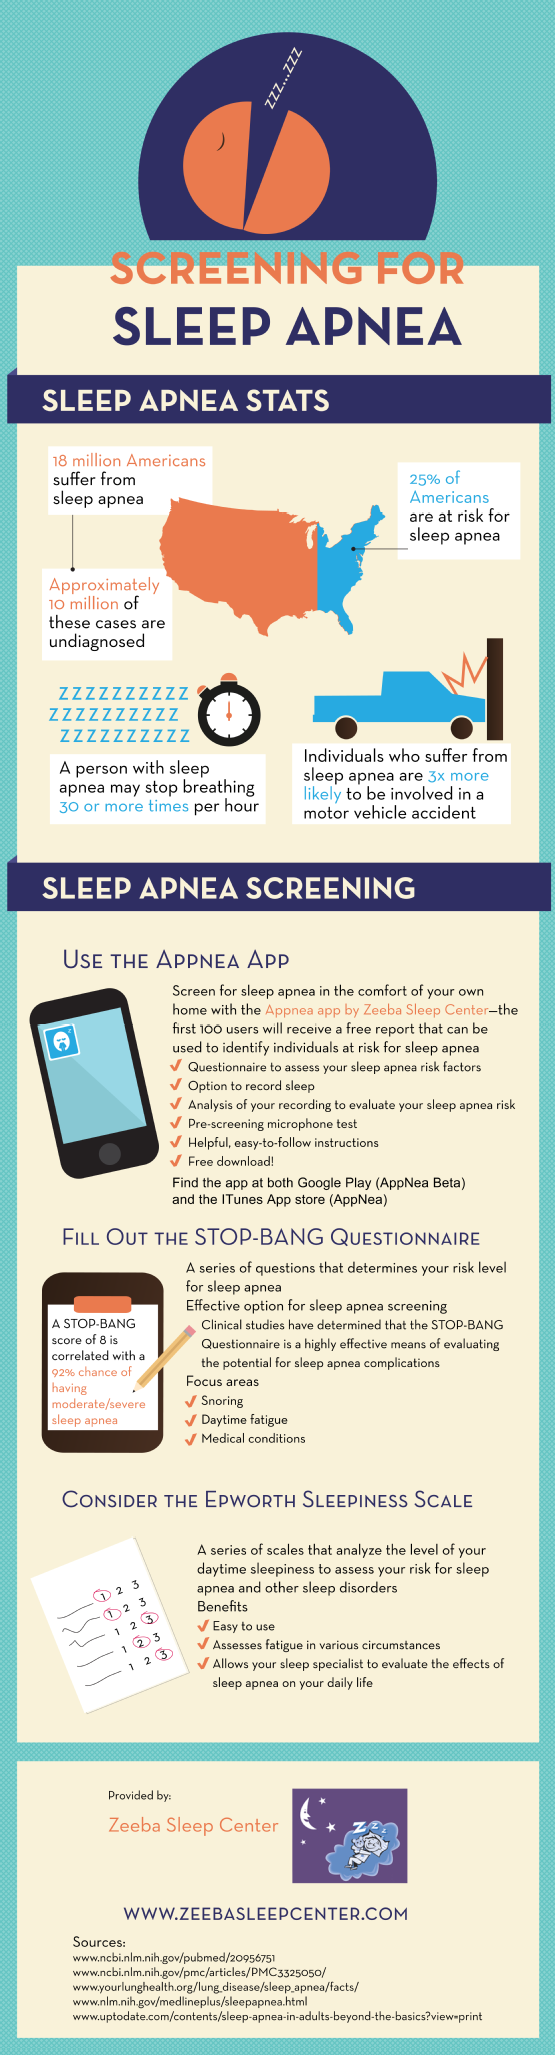 Statistics for Sleep Apnea